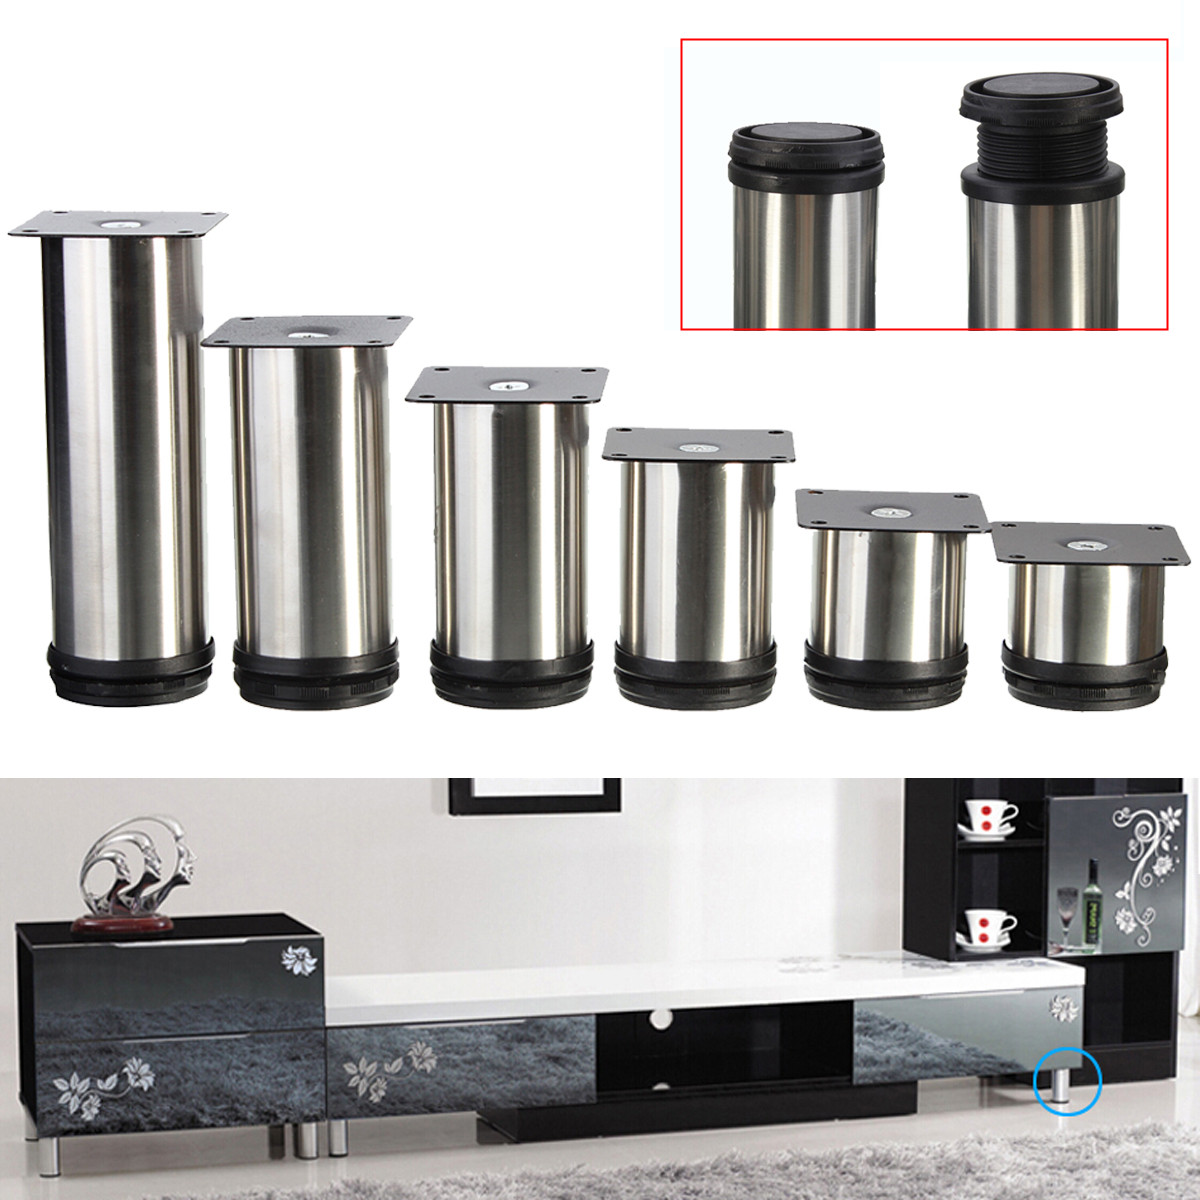 4PCS 5CM-15CM Furniture Adjustable Cabinet Legs Stainless Steel Table Sofa Bed Home Metal Foot Furniture Legs